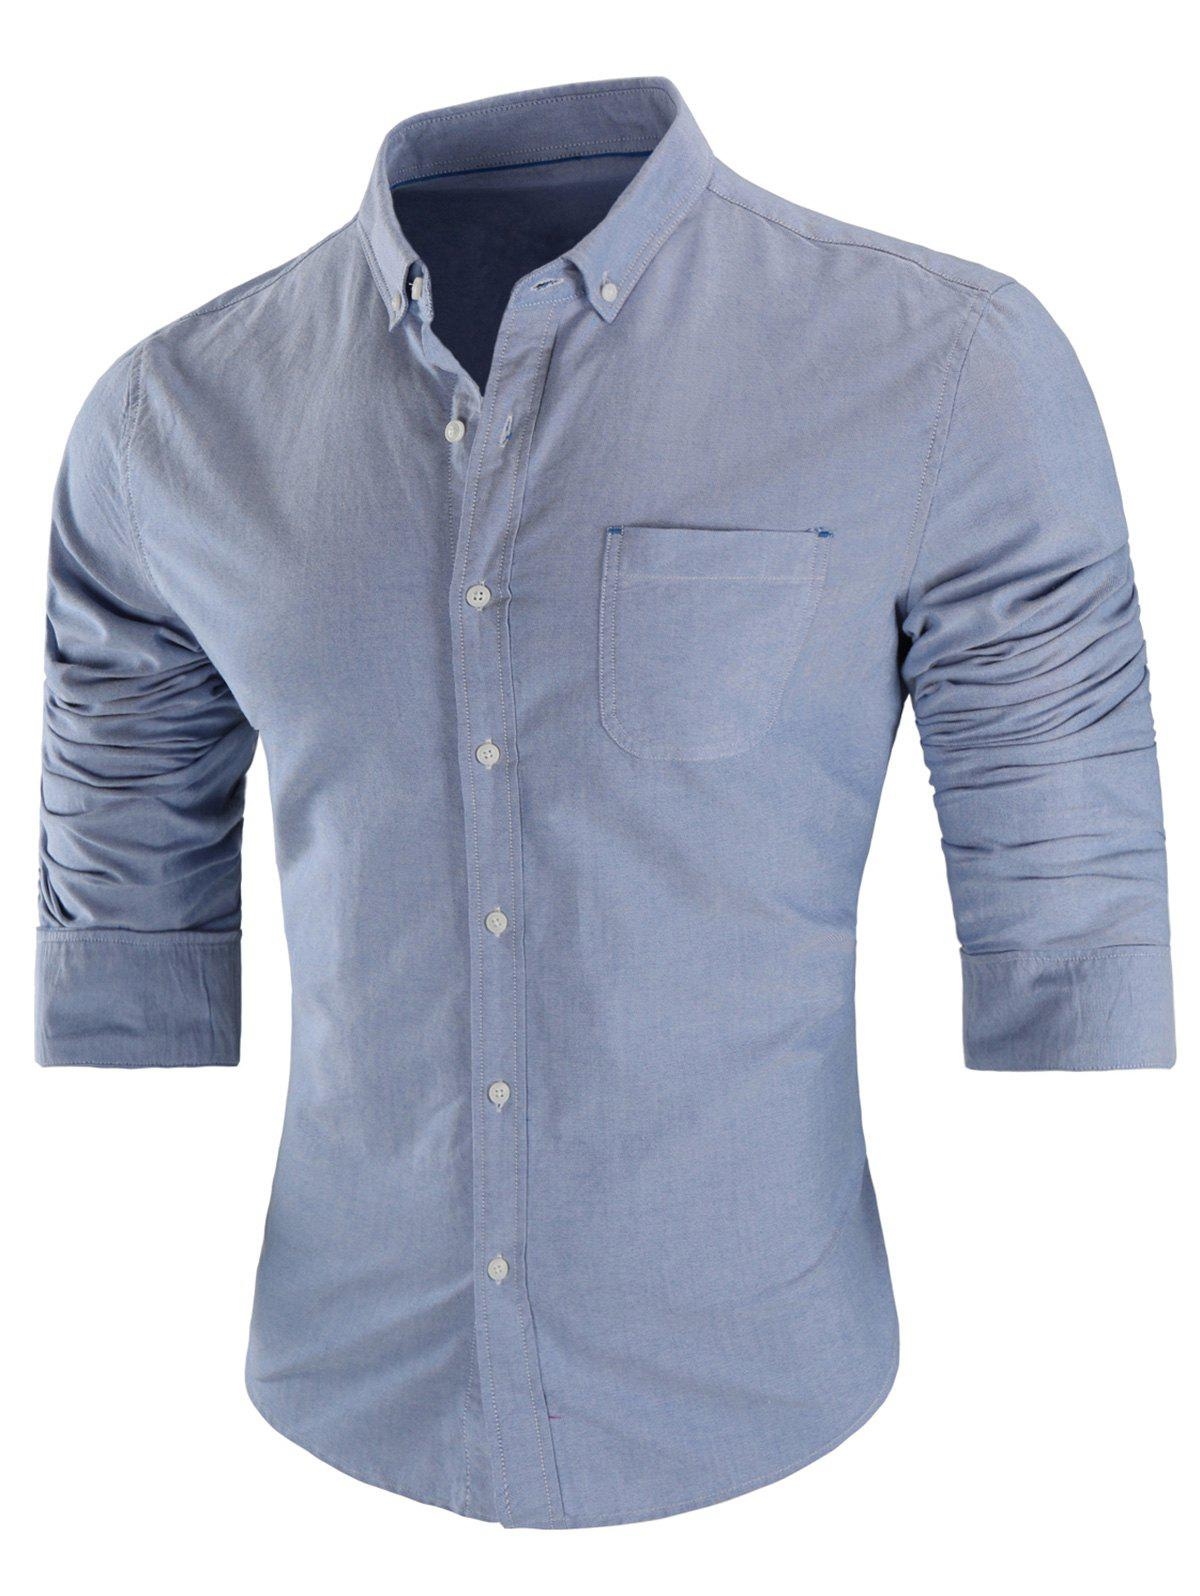 Affordable Chest Pocket Button Down Shirt